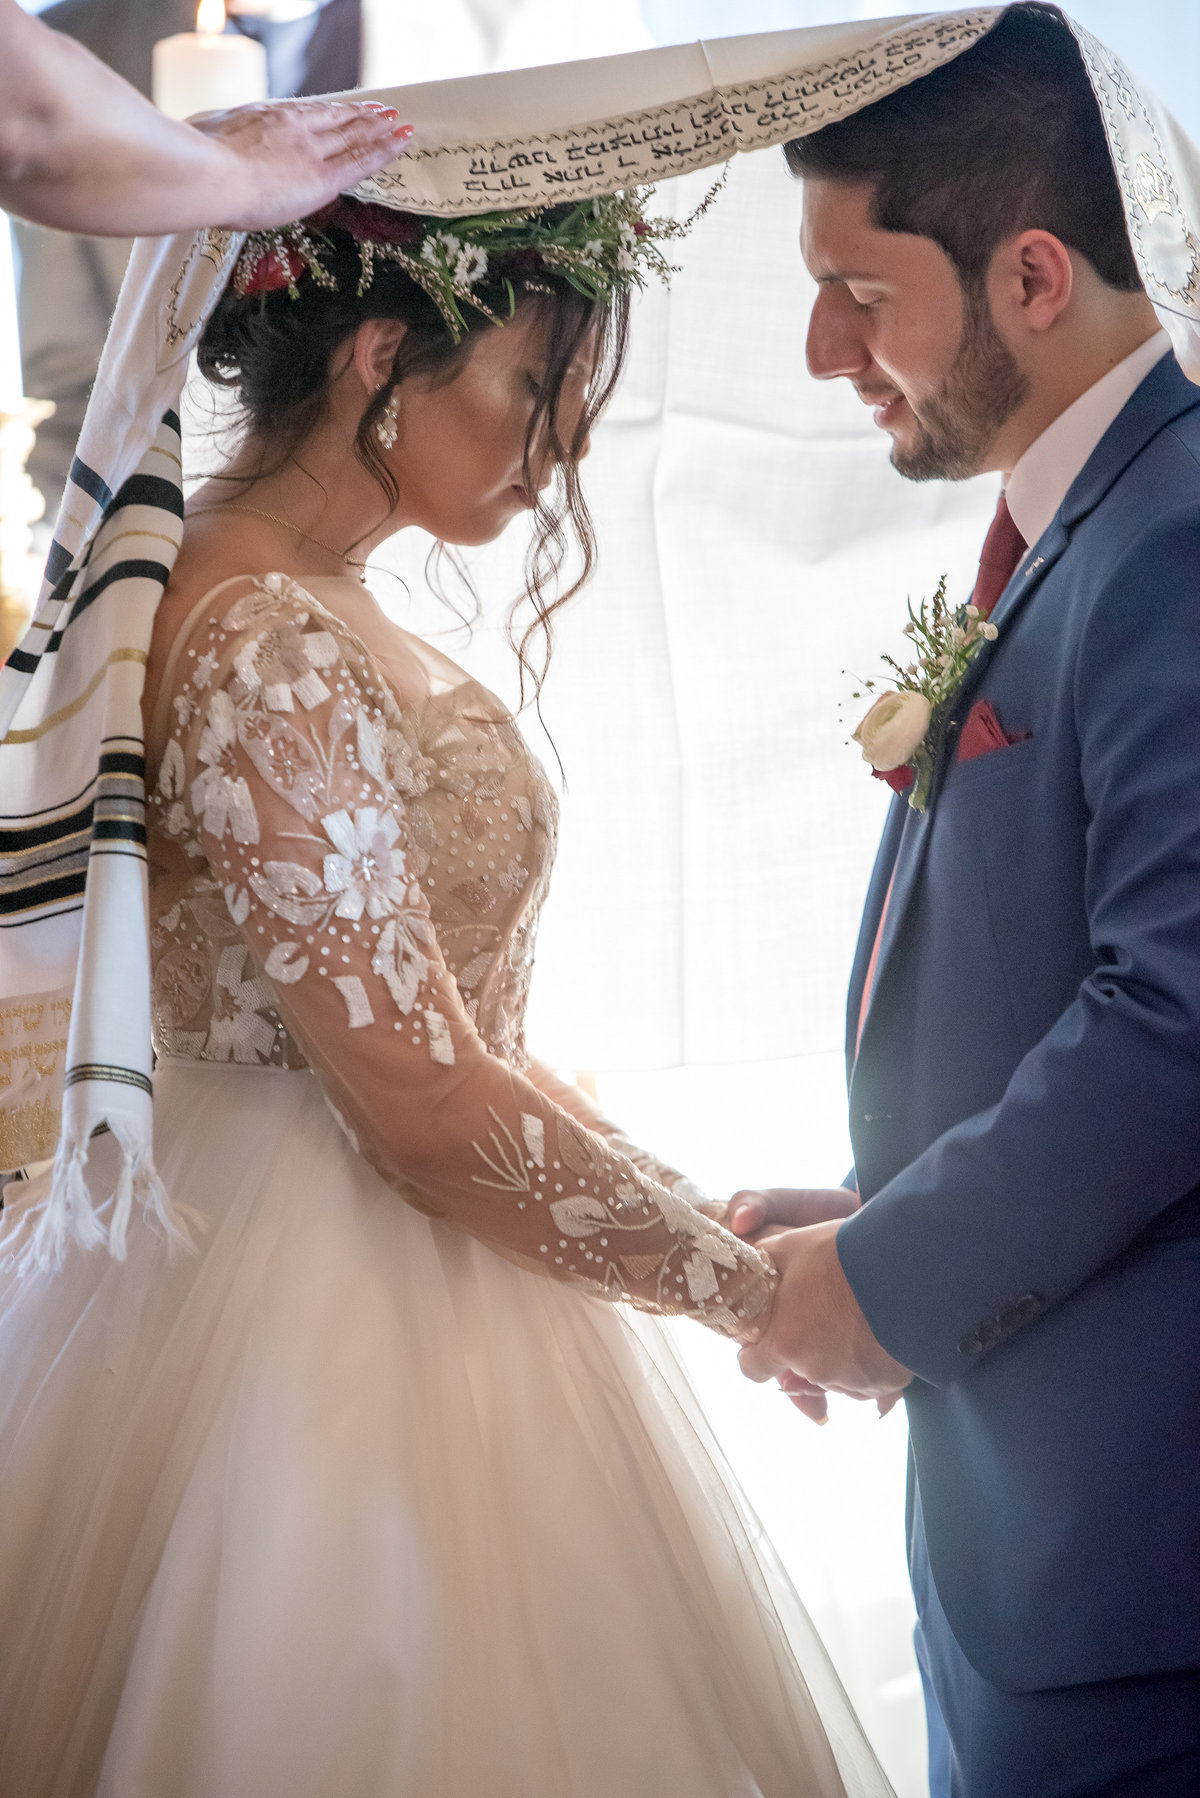 Jewish mantle wedding